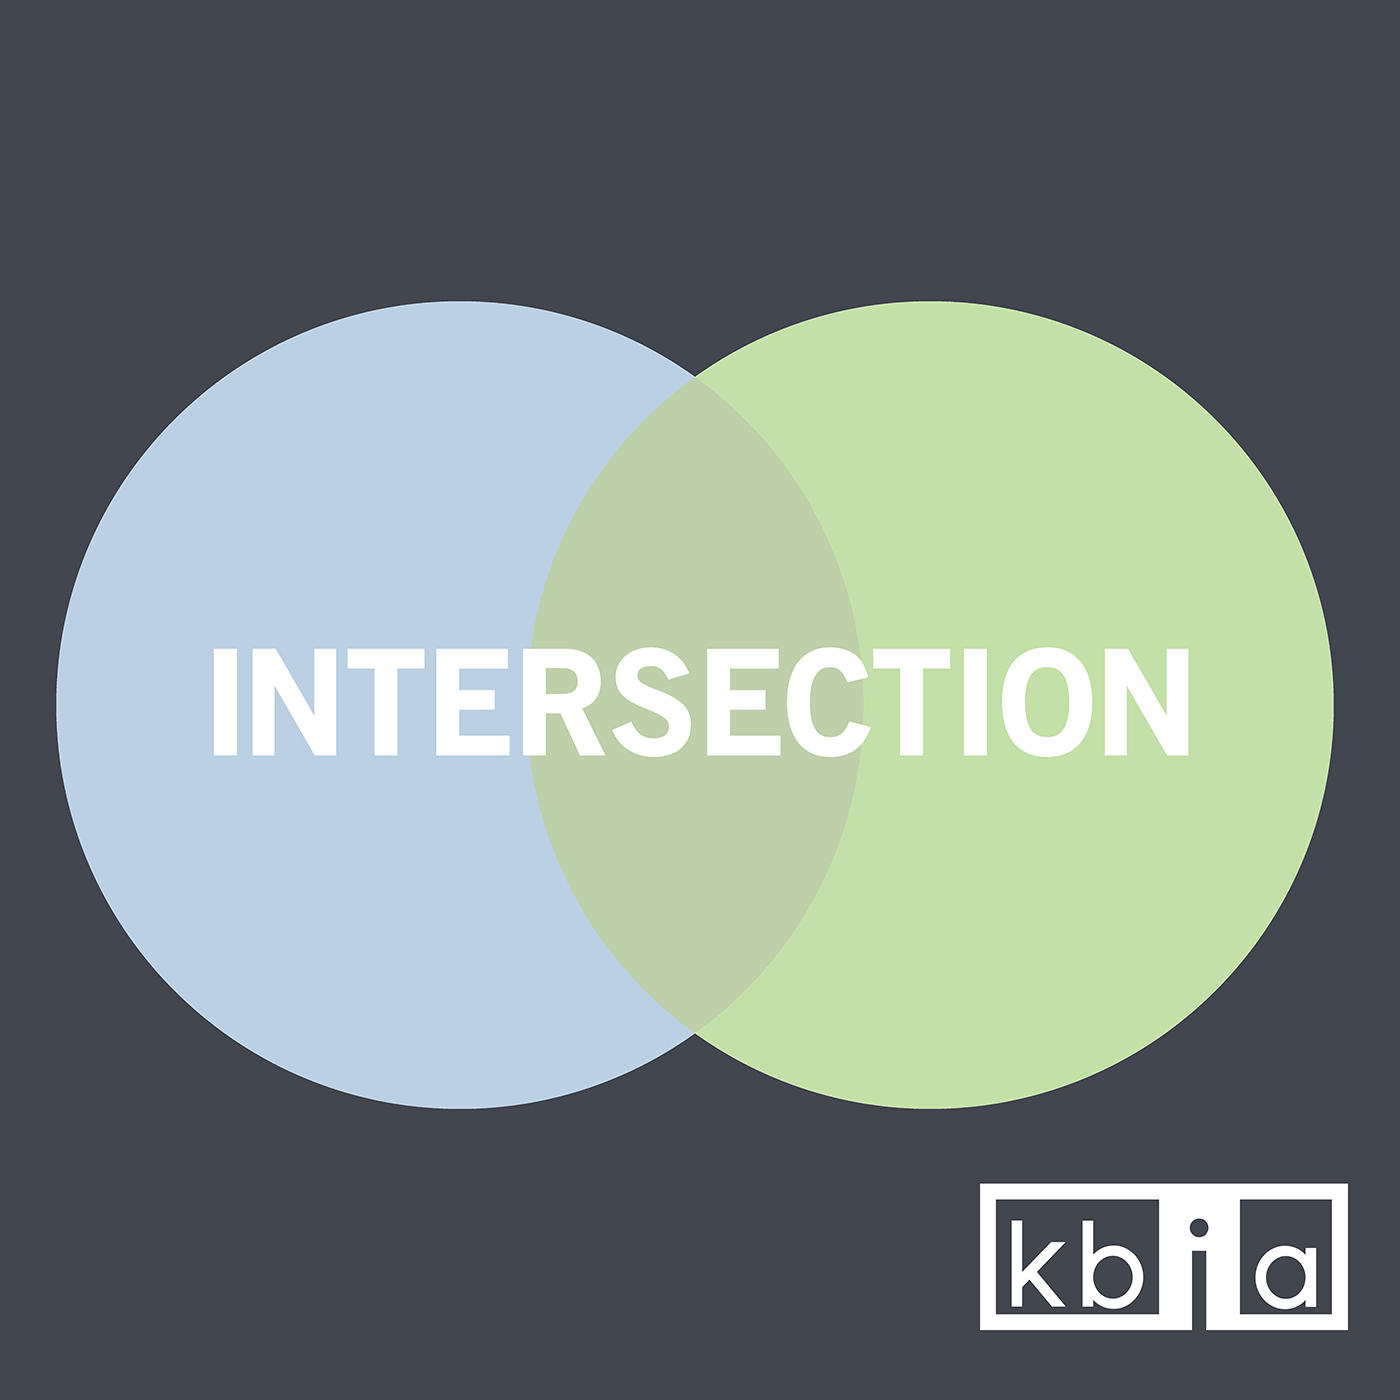 intersection kbia